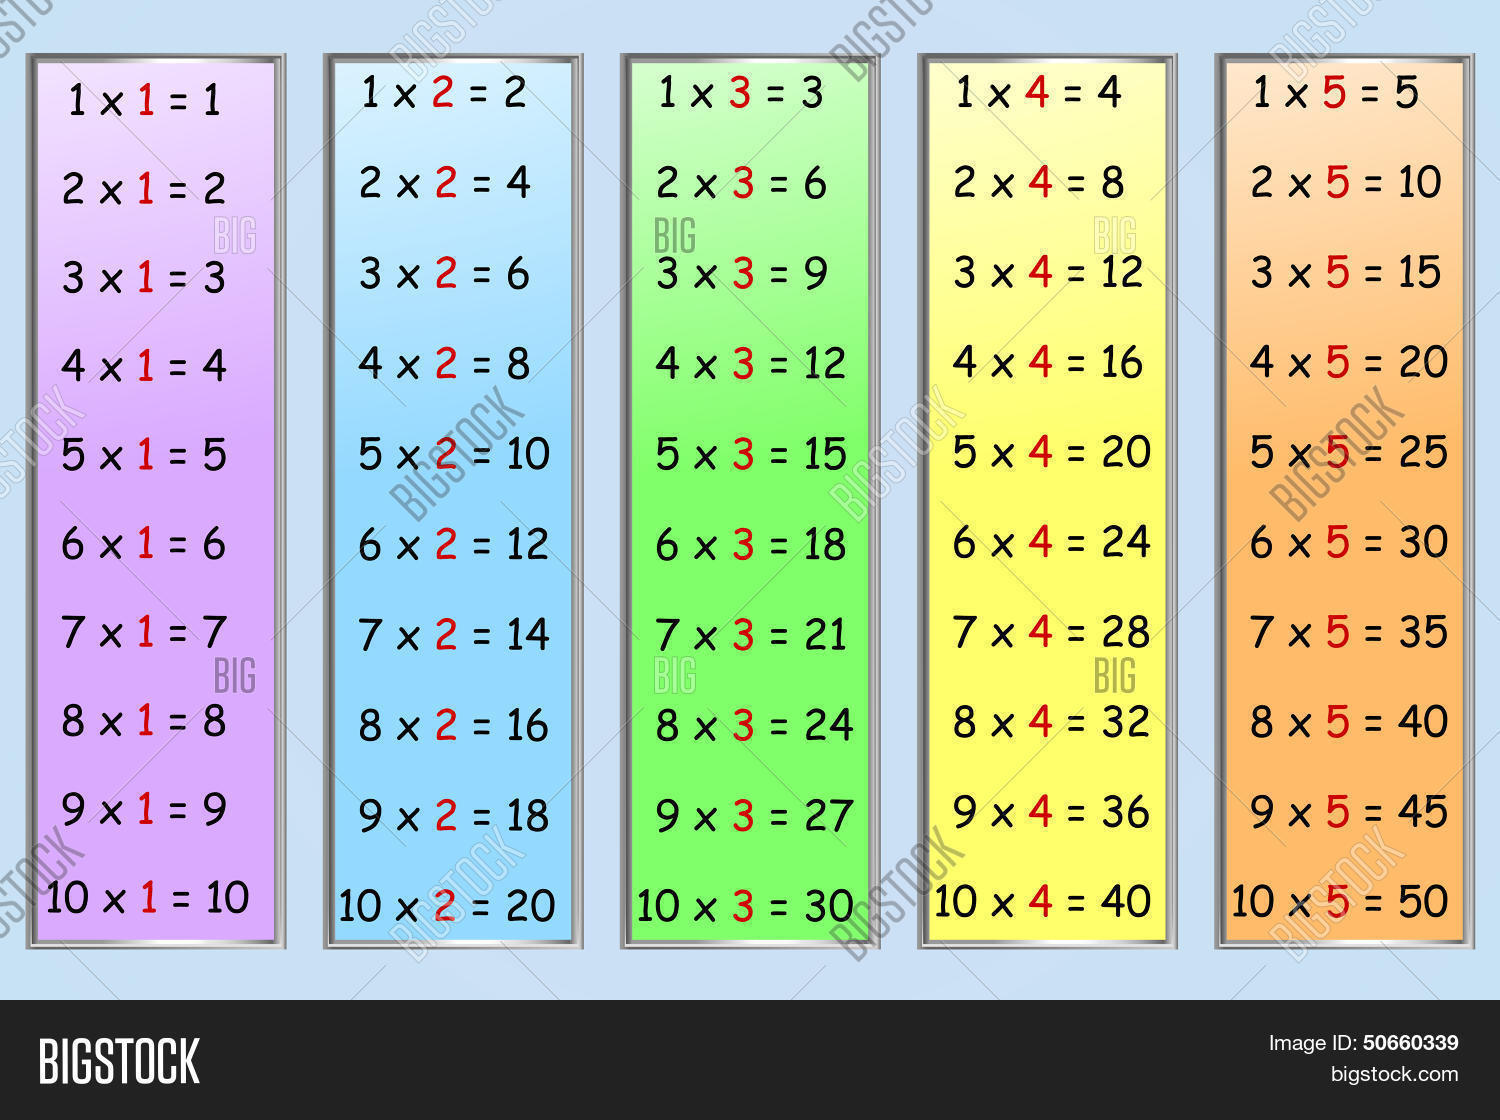 Multiplication table part 1 vector photo bigstock for Table de multiplication de 5